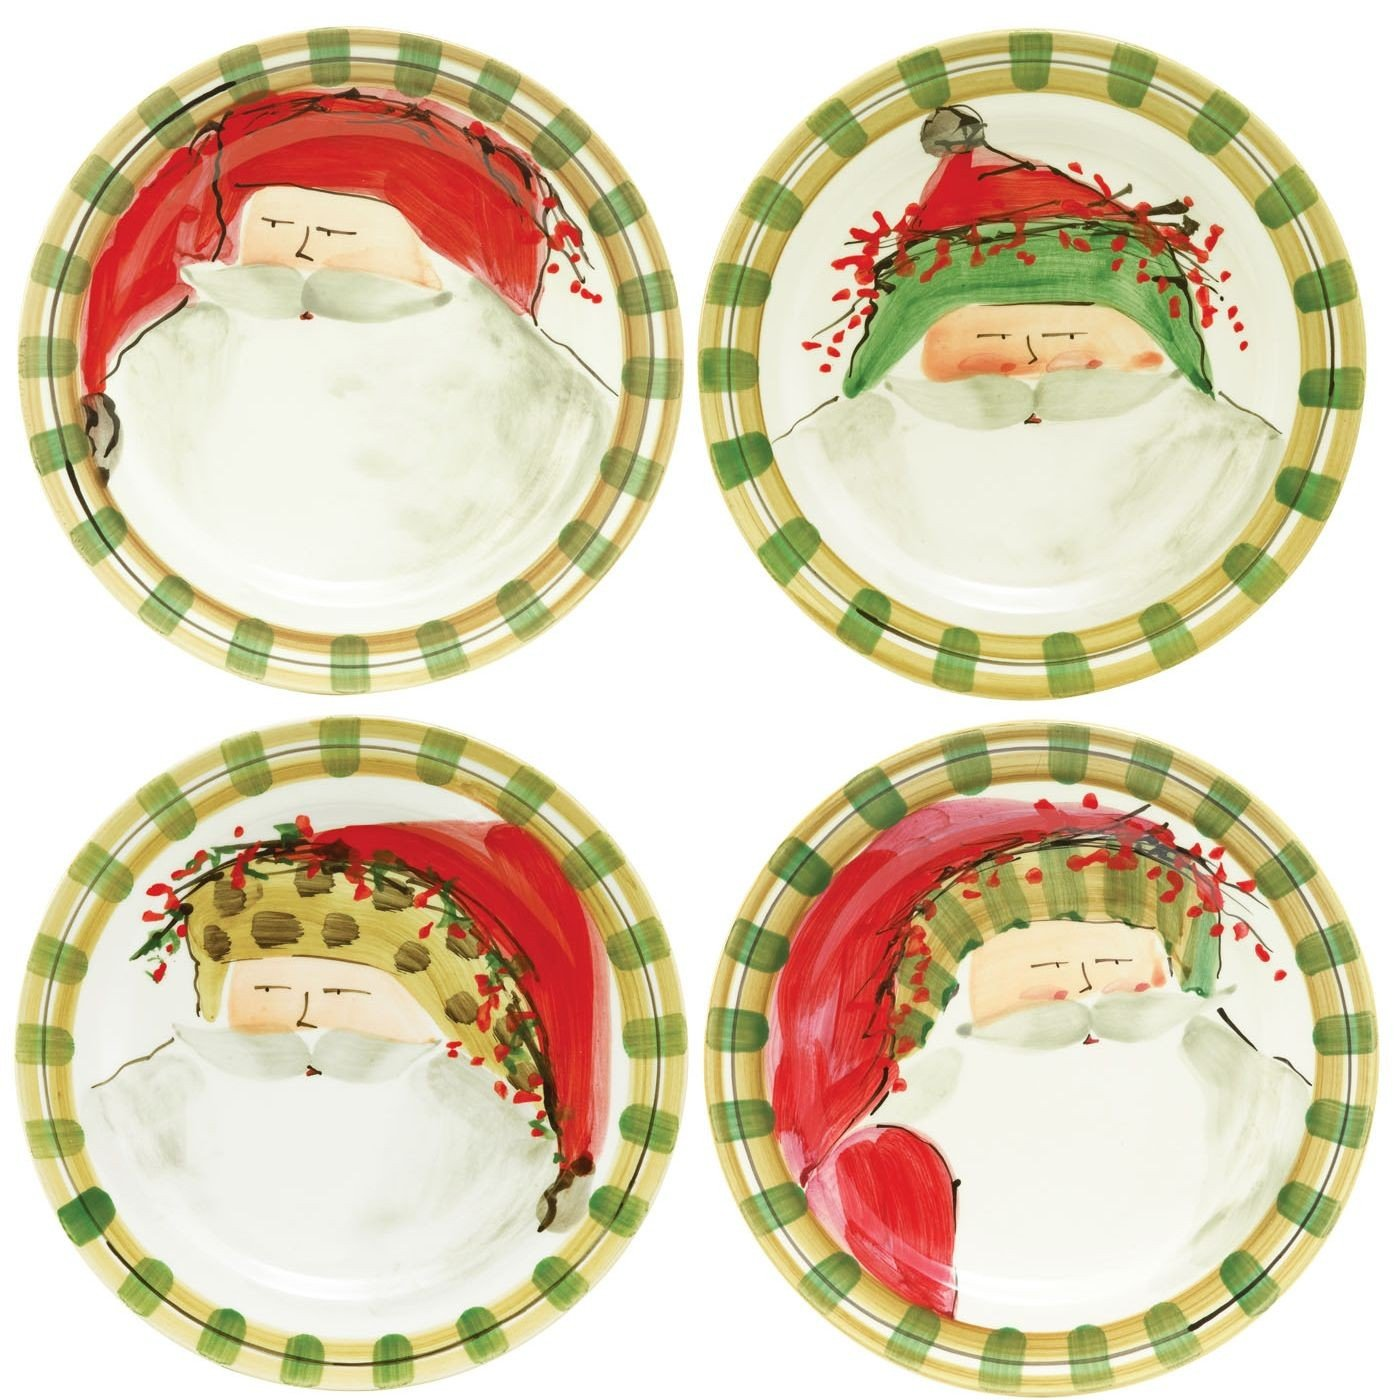 Amazon.com Vietri Old St. Nick Assorted Dinner Plates Set of 4 - 10.75  Home u0026 Kitchen  sc 1 st  Amazon.com & Amazon.com: Vietri Old St. Nick Assorted Dinner Plates Set of 4 ...